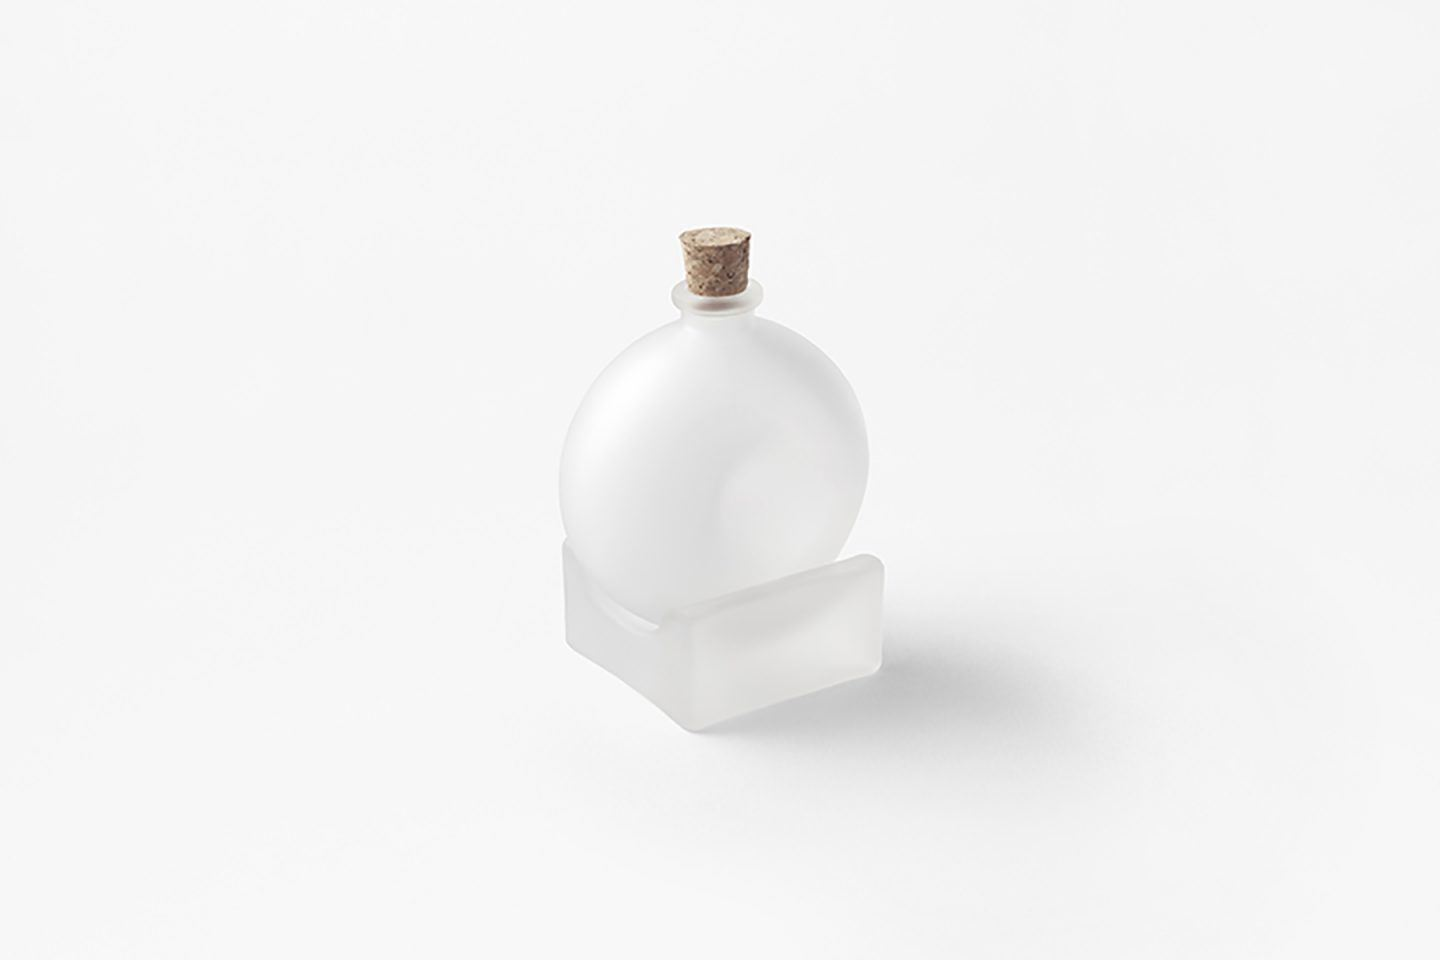 IGNANT-Design-Nendo-Pepper-Pestle-3